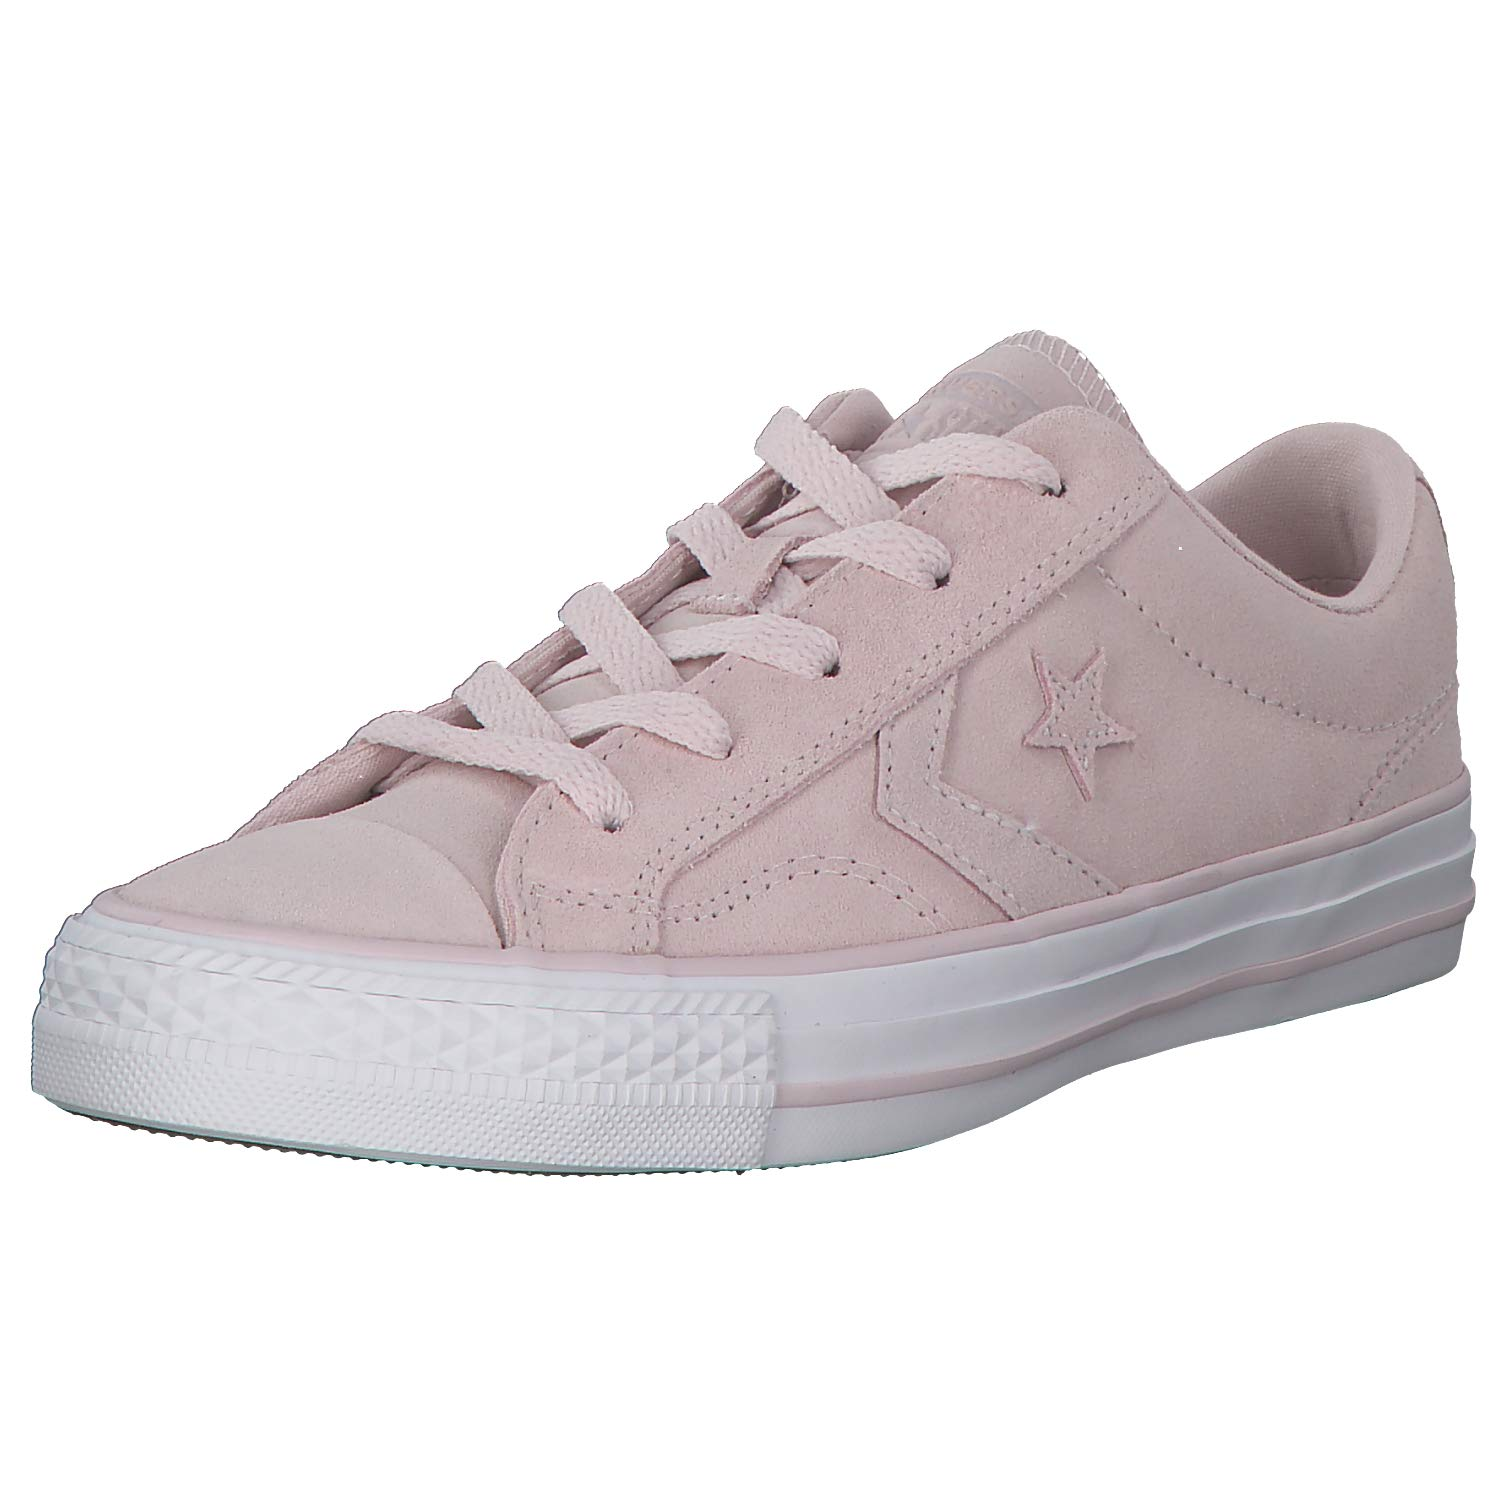 Rose (Barely Rose Barely Rose blanc 653) Converse Star Player Ox, Chaussures de Fitness Mixte Enfant 37 EU